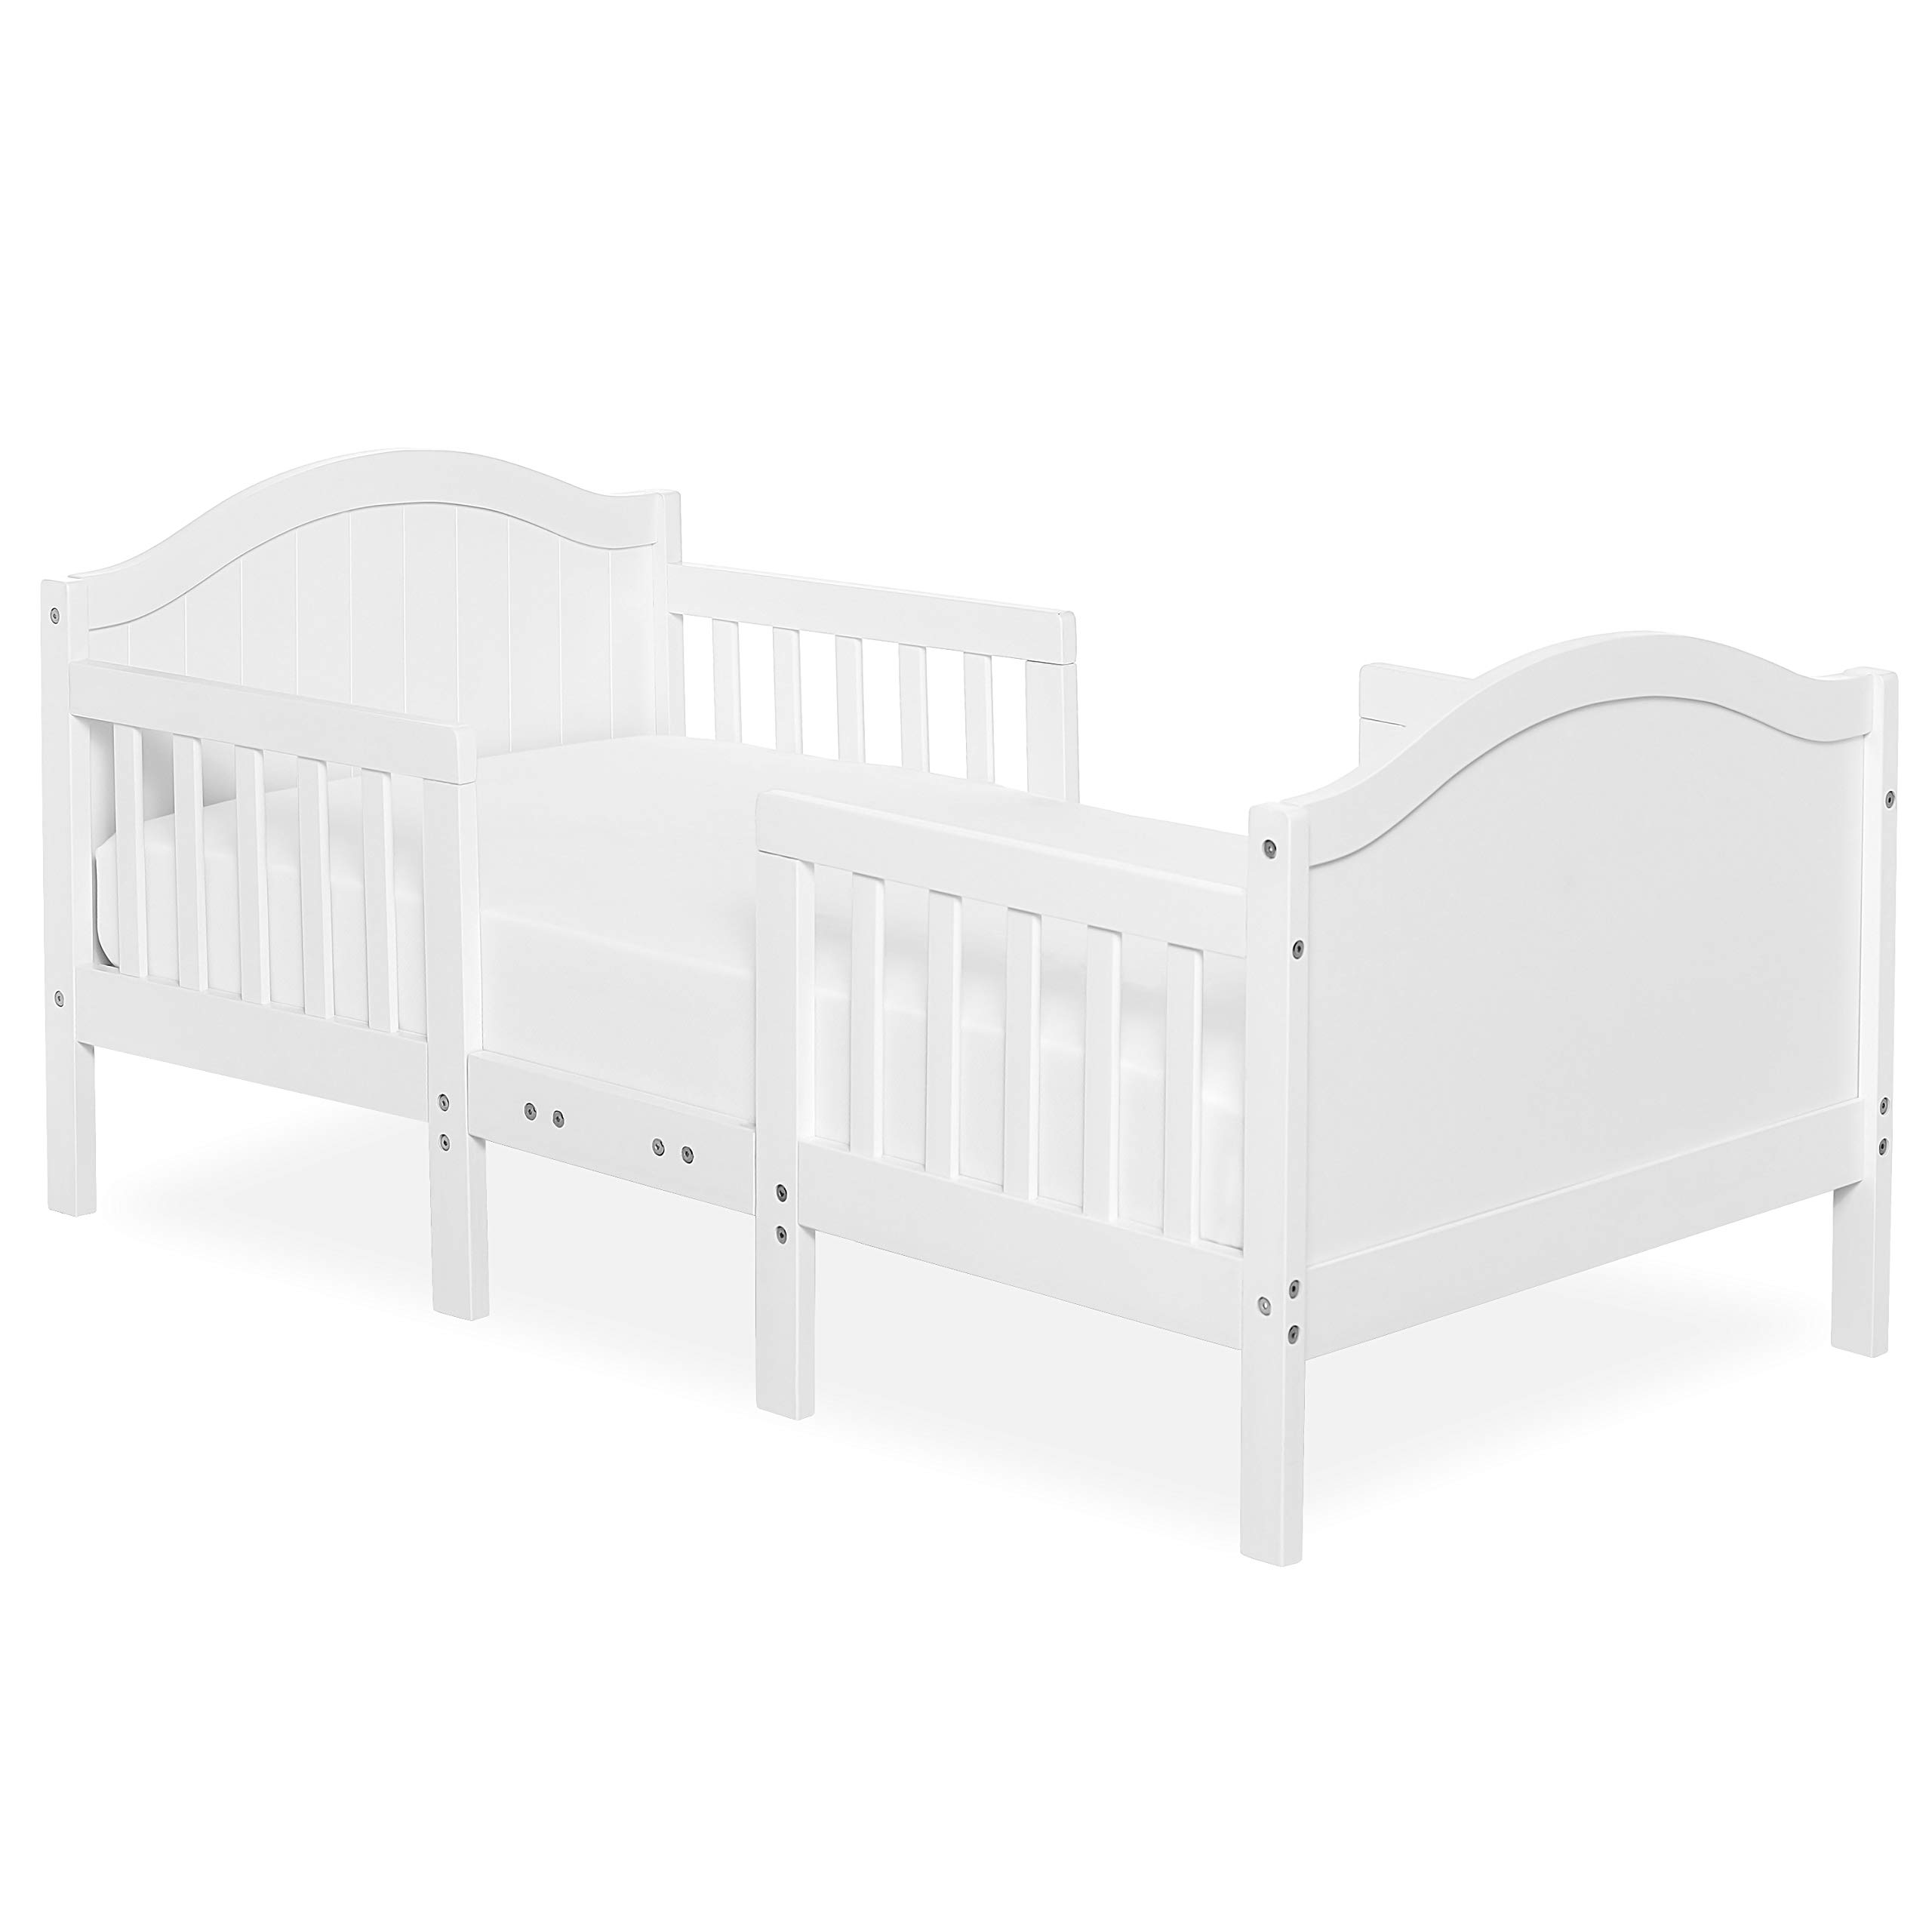 Dream On Me Portland 3 In 1 Convertible Toddler Bed, White by Dream On Me